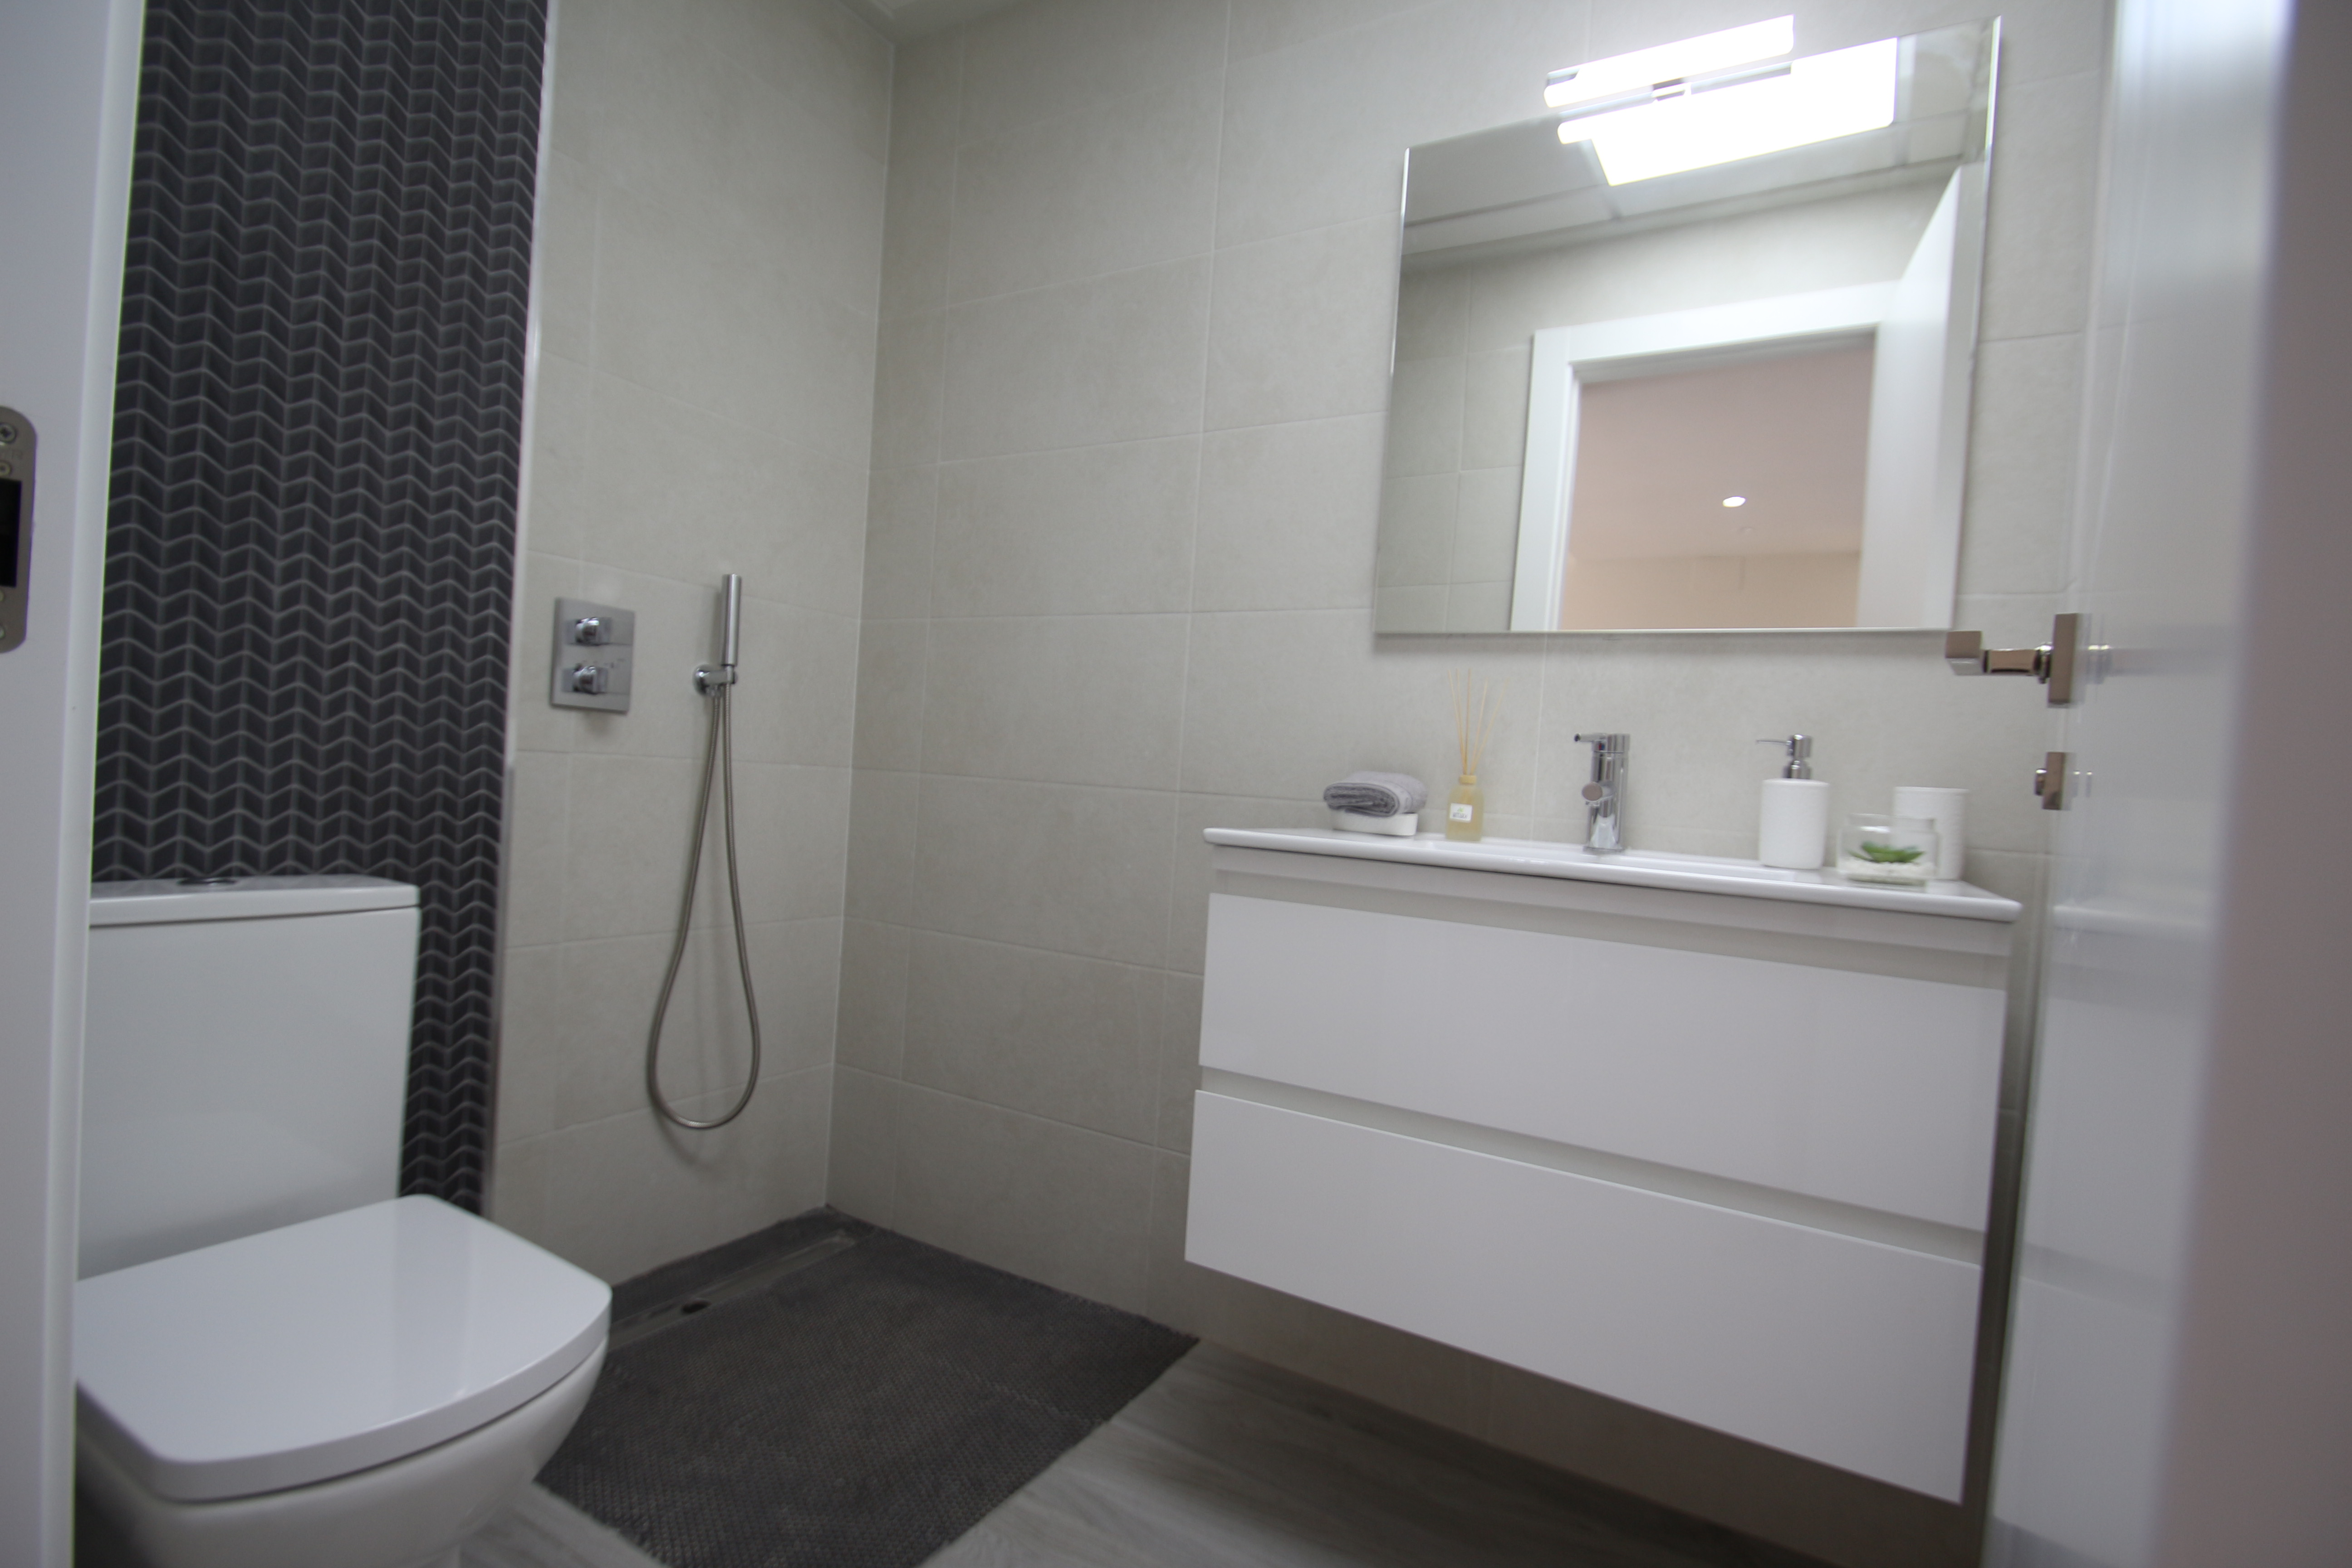 2 bedroom apartment For Sale in Guardamar - photograph 7